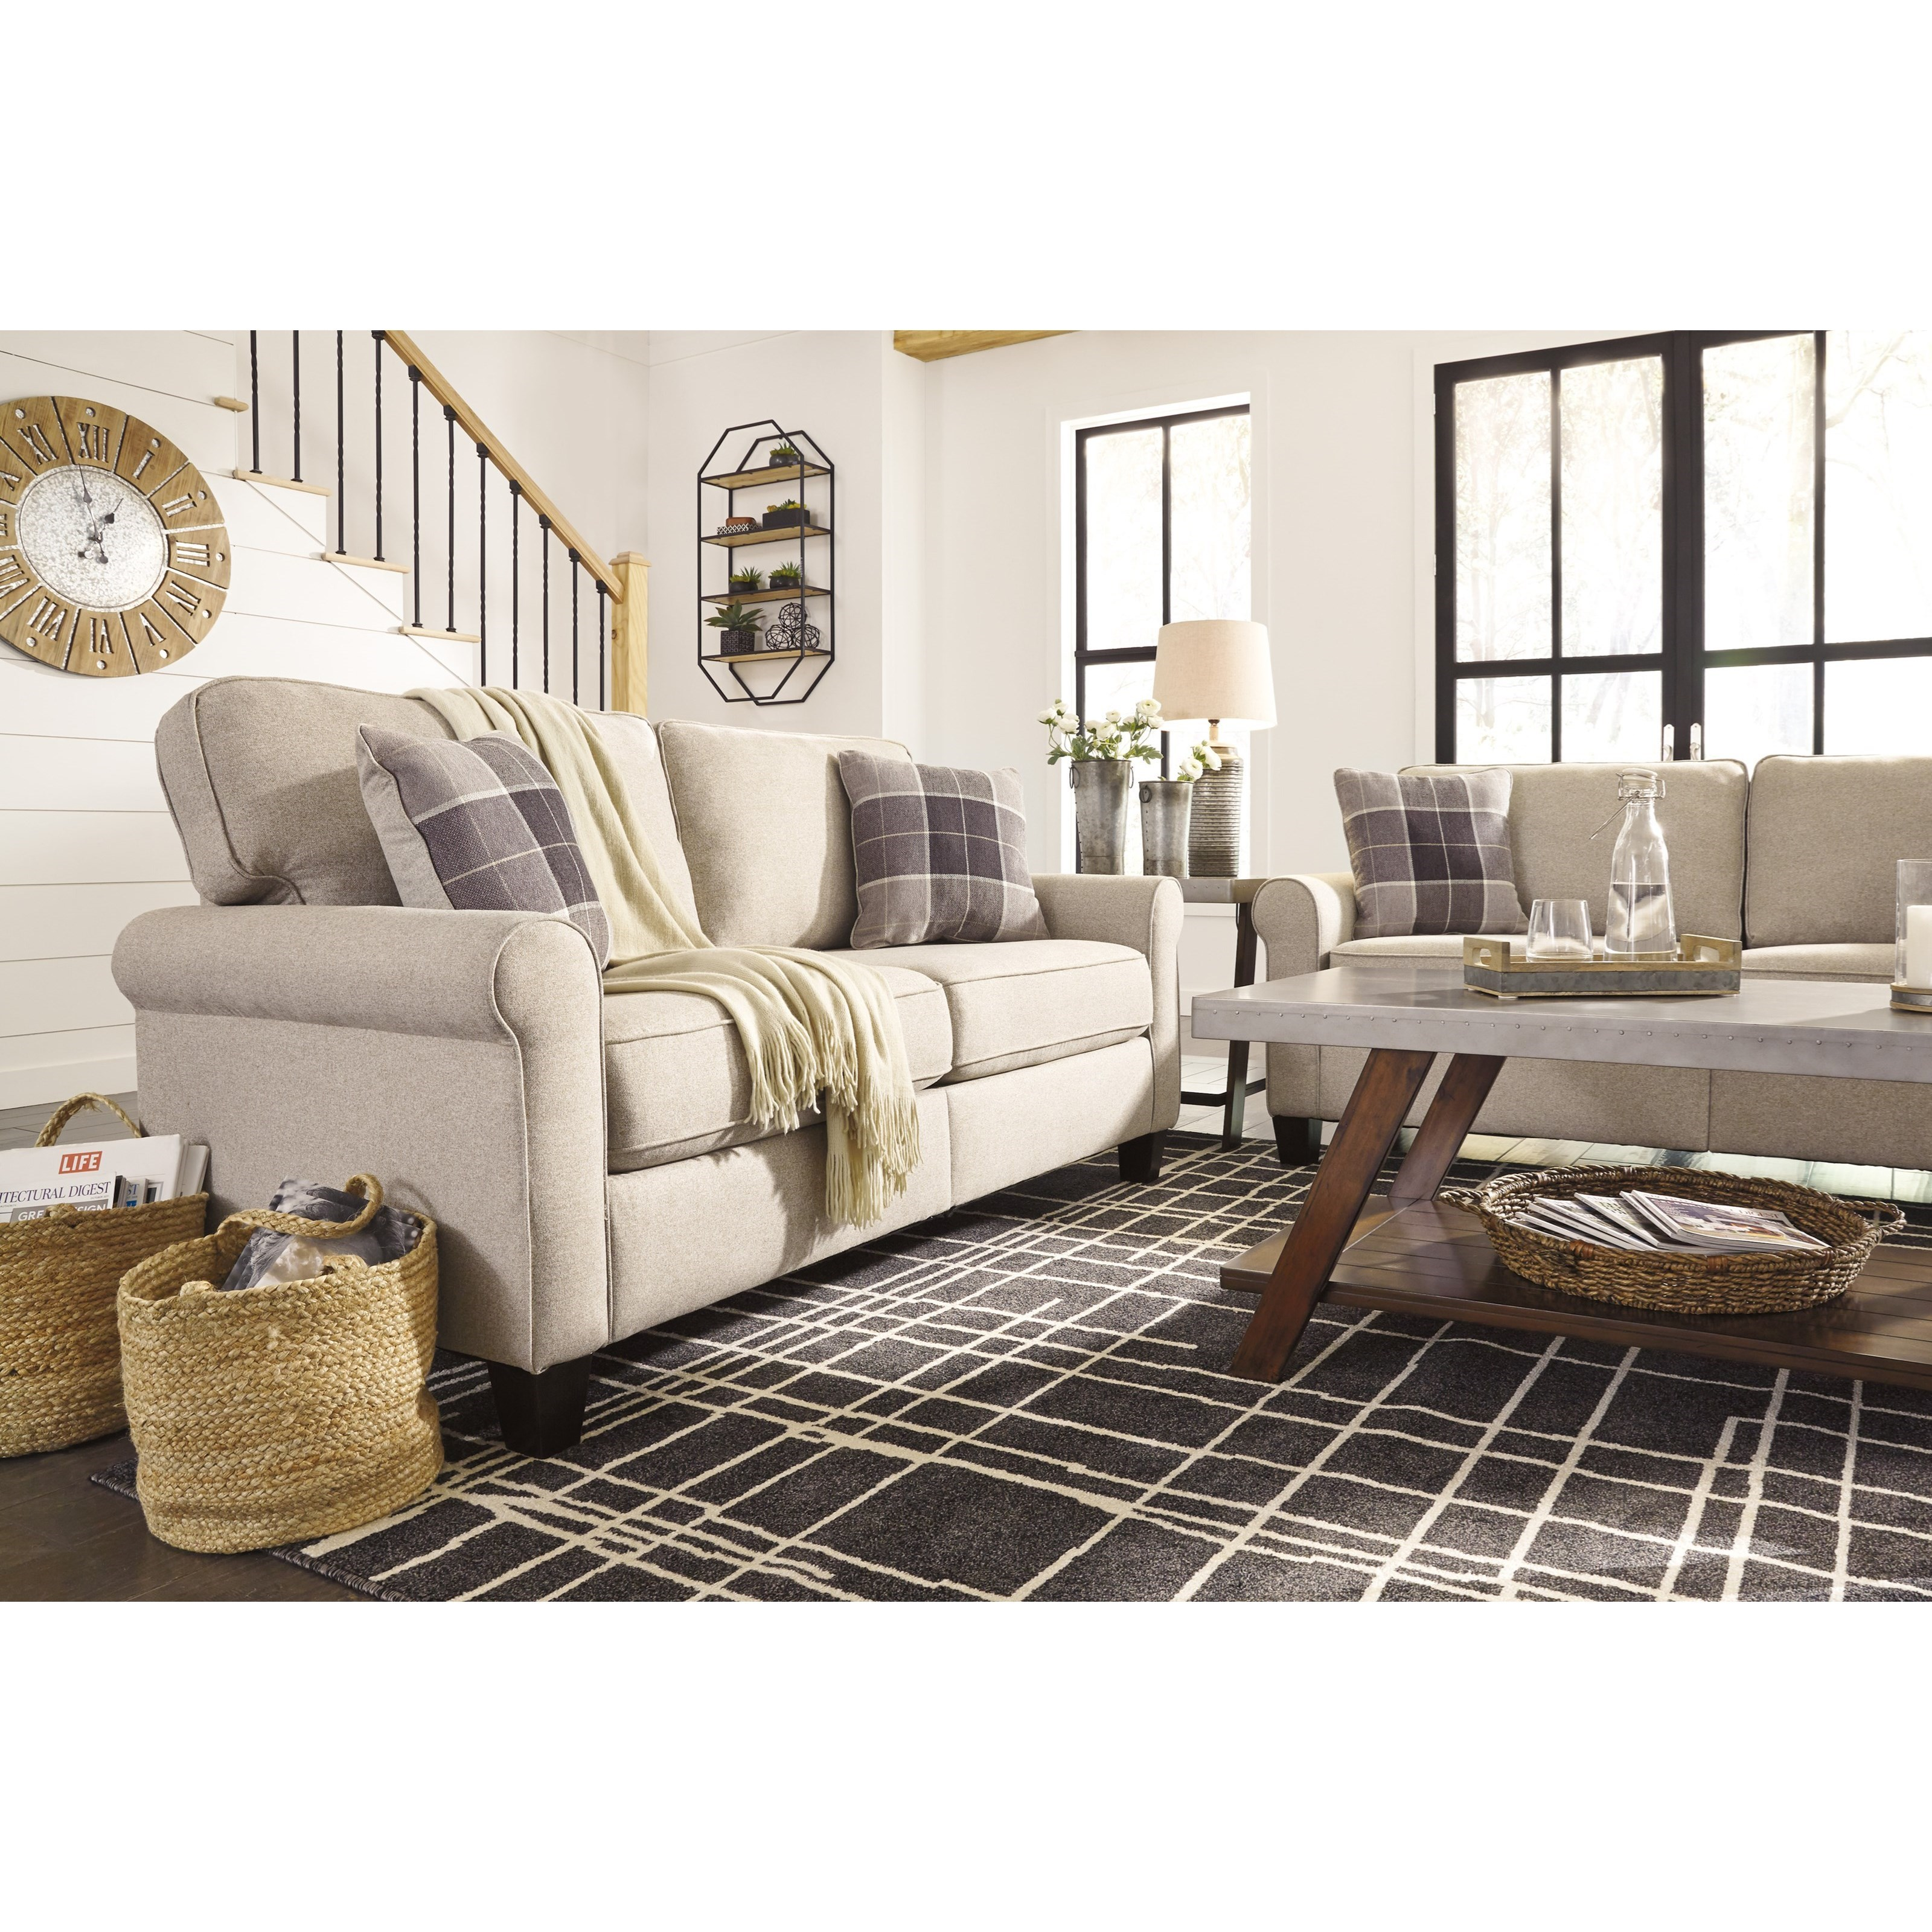 Signature Design by Ashley Lingen Casual Sofa with Rolled Arms         Signature Design by Ashley LingenSofa